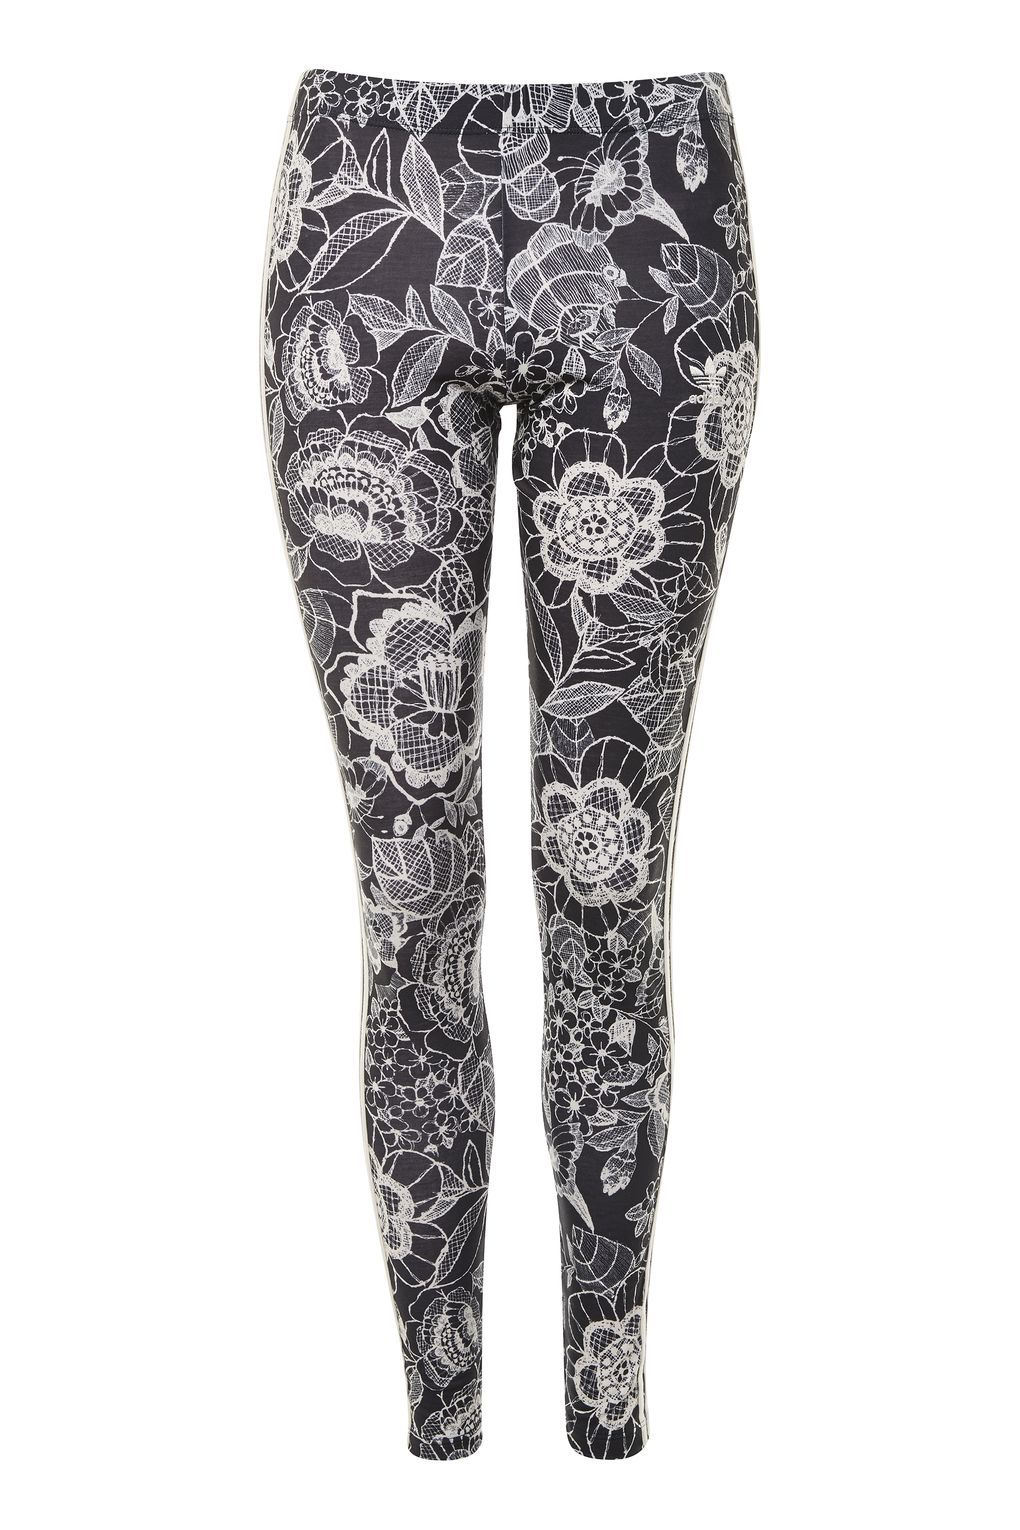 Active By Pinterest Originals Floral Adidas Leggings WxXnWg1